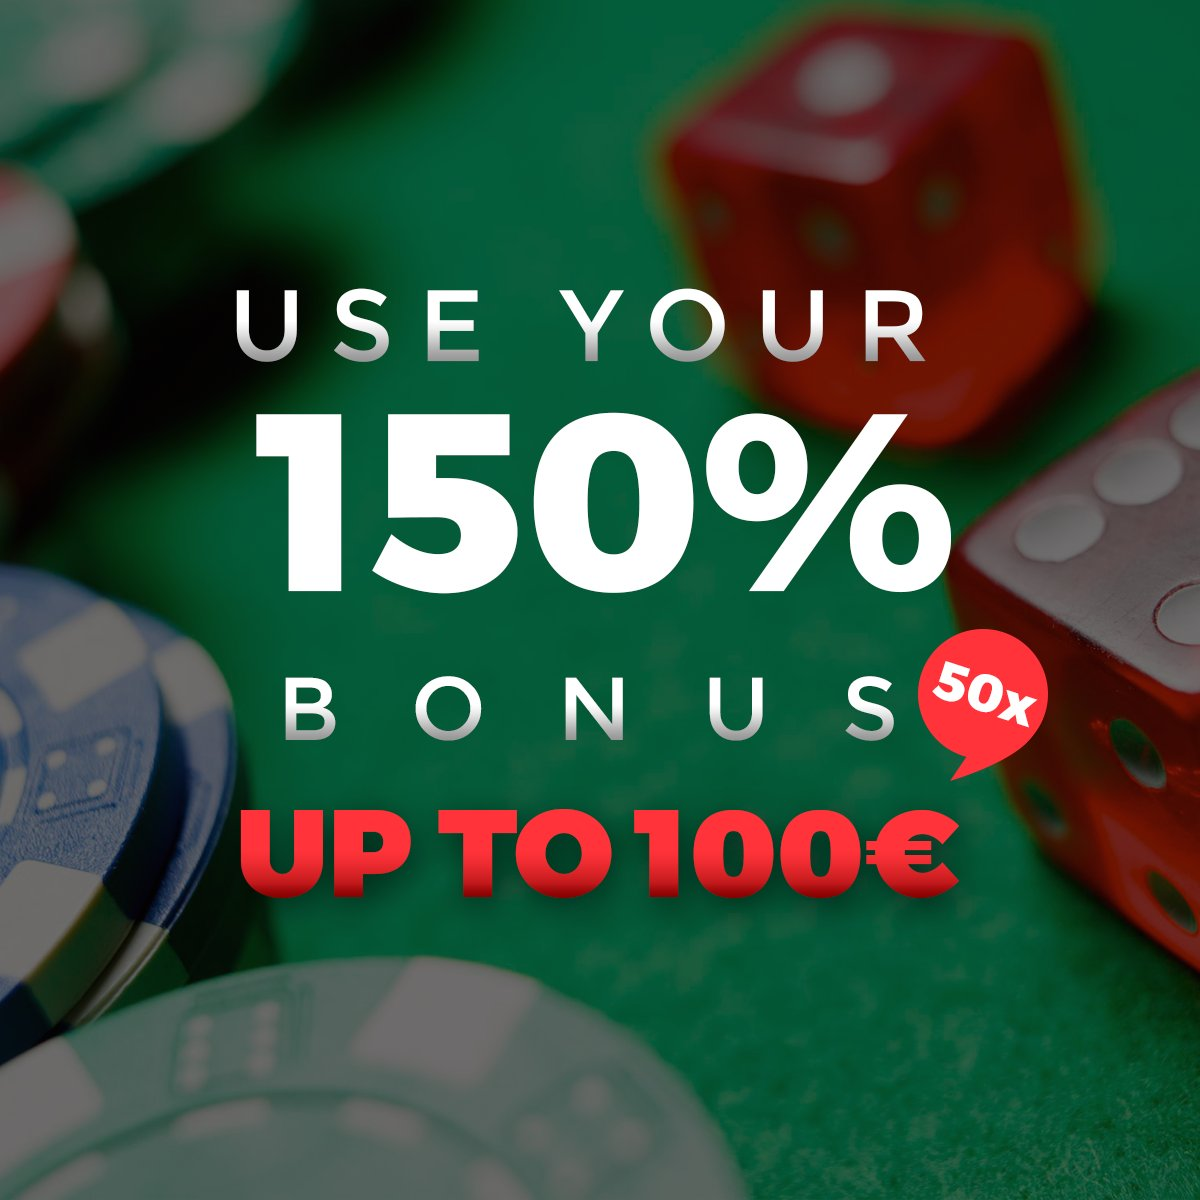 test Twitter Media - Who's on for some gaming? Use your 150% bonus up to 100 EUR 50x, bonus and deposit! 👌😄 #CasinoAdrenaline #CasinoAdrenalinebonus https://t.co/fVp8VWIYis